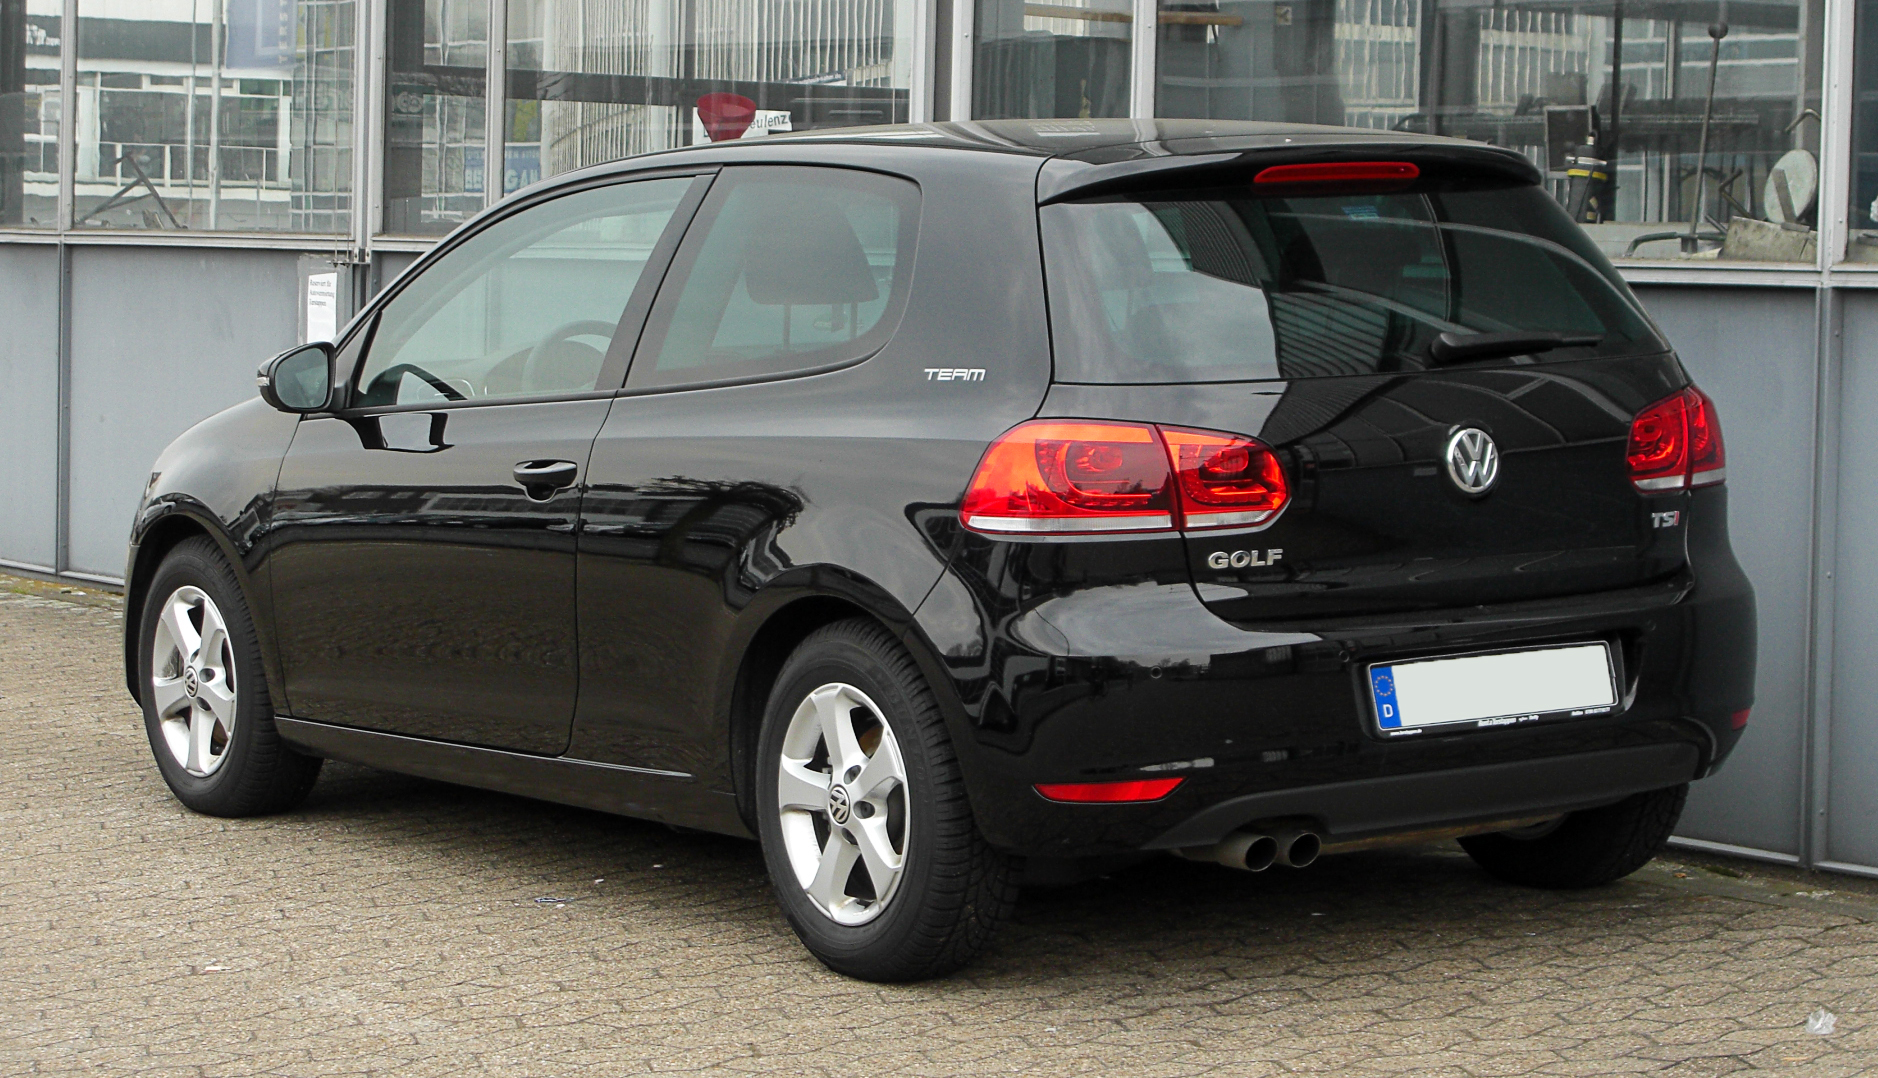 file vw golf 1 4 tsi team vi heckansicht 26 m rz 2011 wikimedia commons. Black Bedroom Furniture Sets. Home Design Ideas